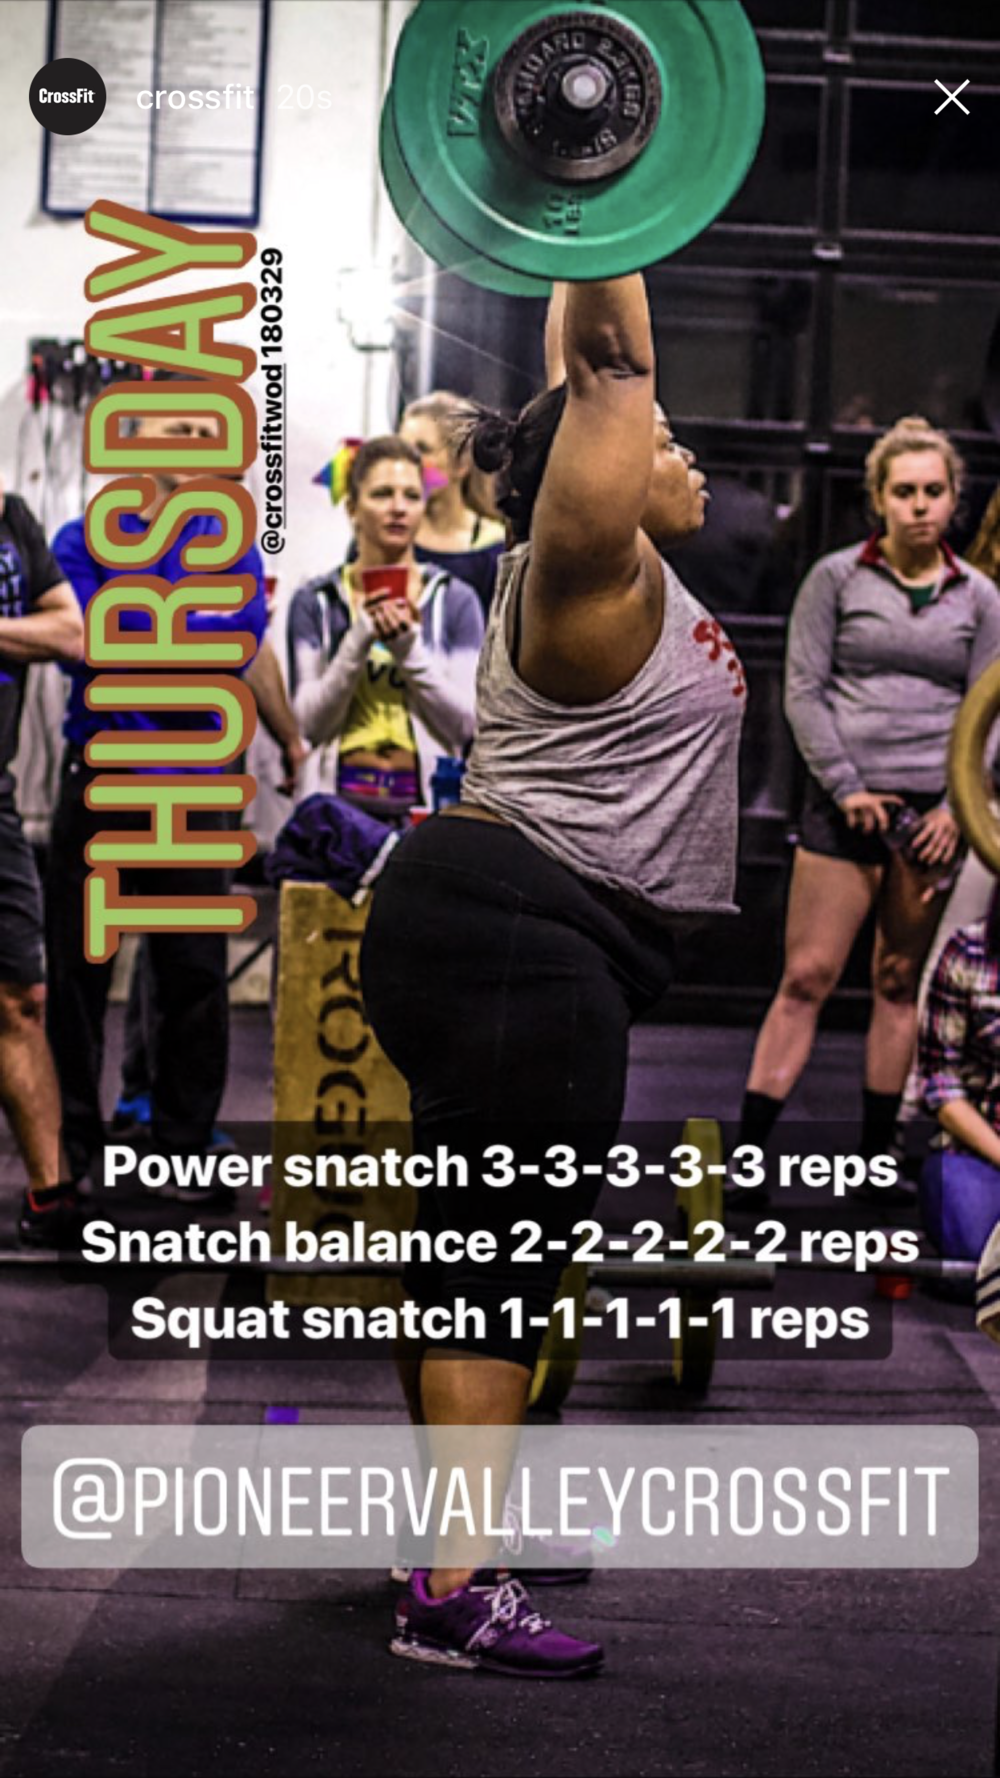 Our PVCF athlete, Dre Dominigue was featured in CrossFit's story! Missed this? Follow us on Instagram! Click  here